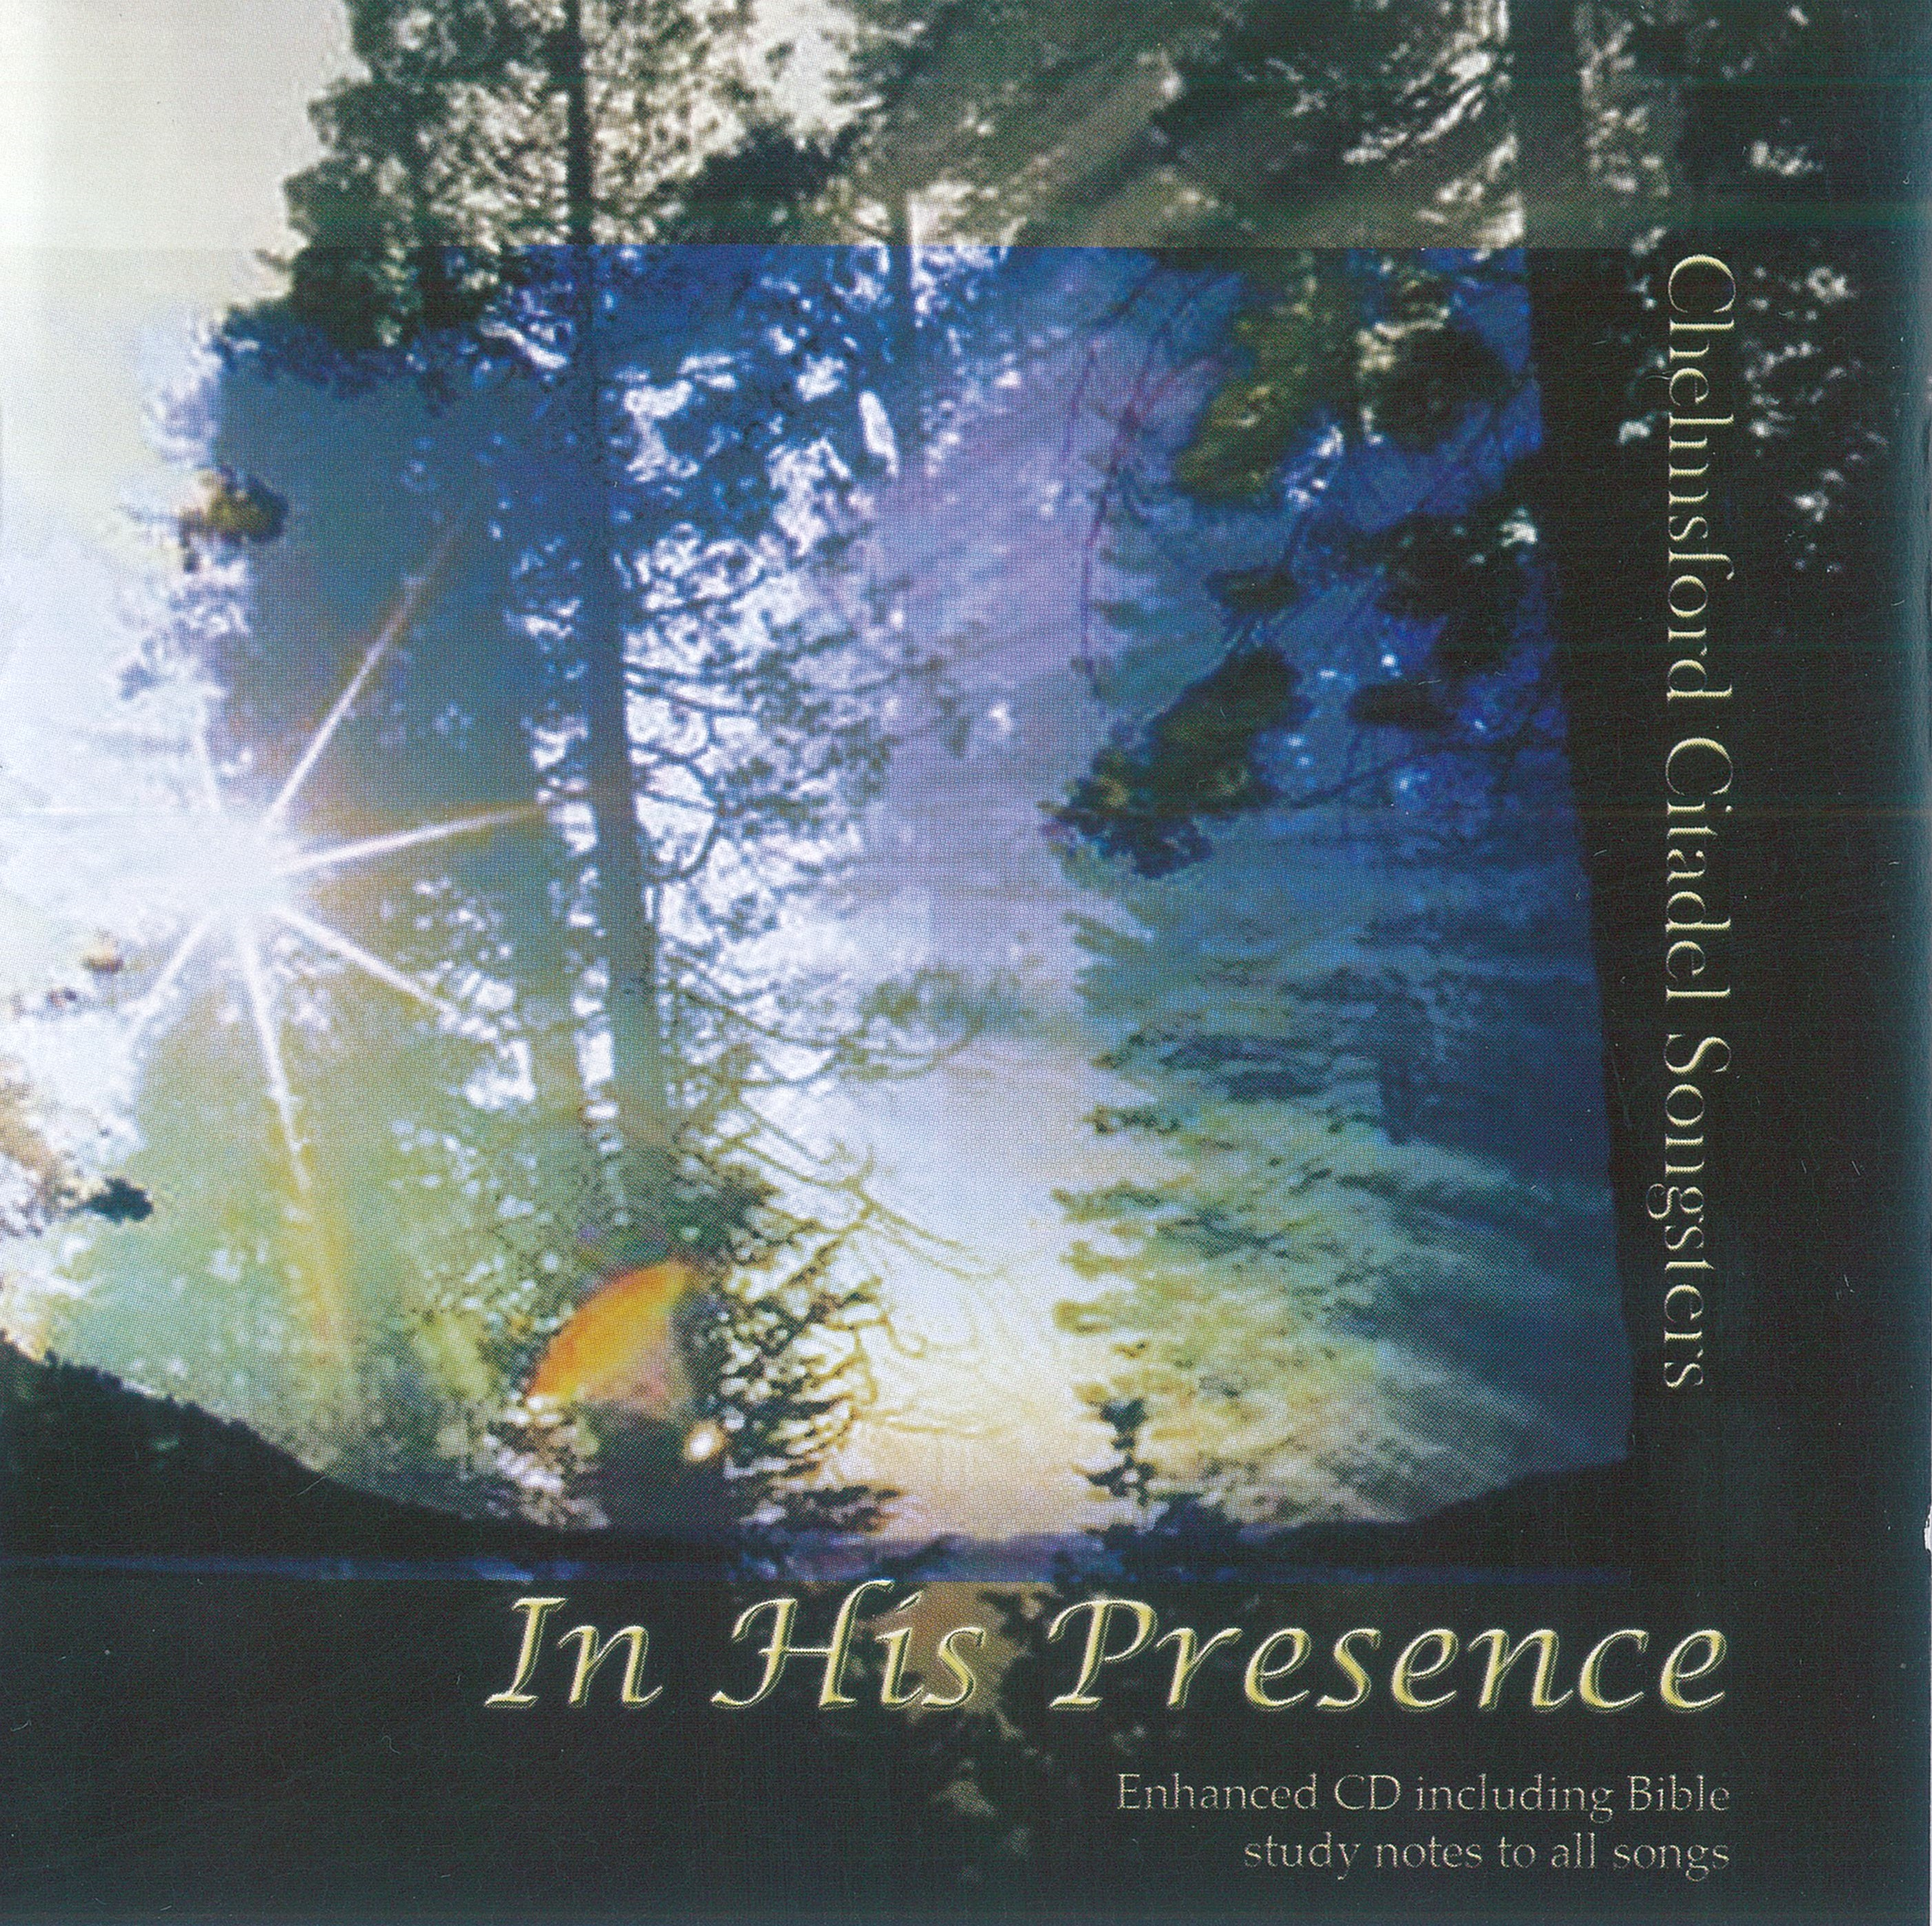 In His Presence - Download